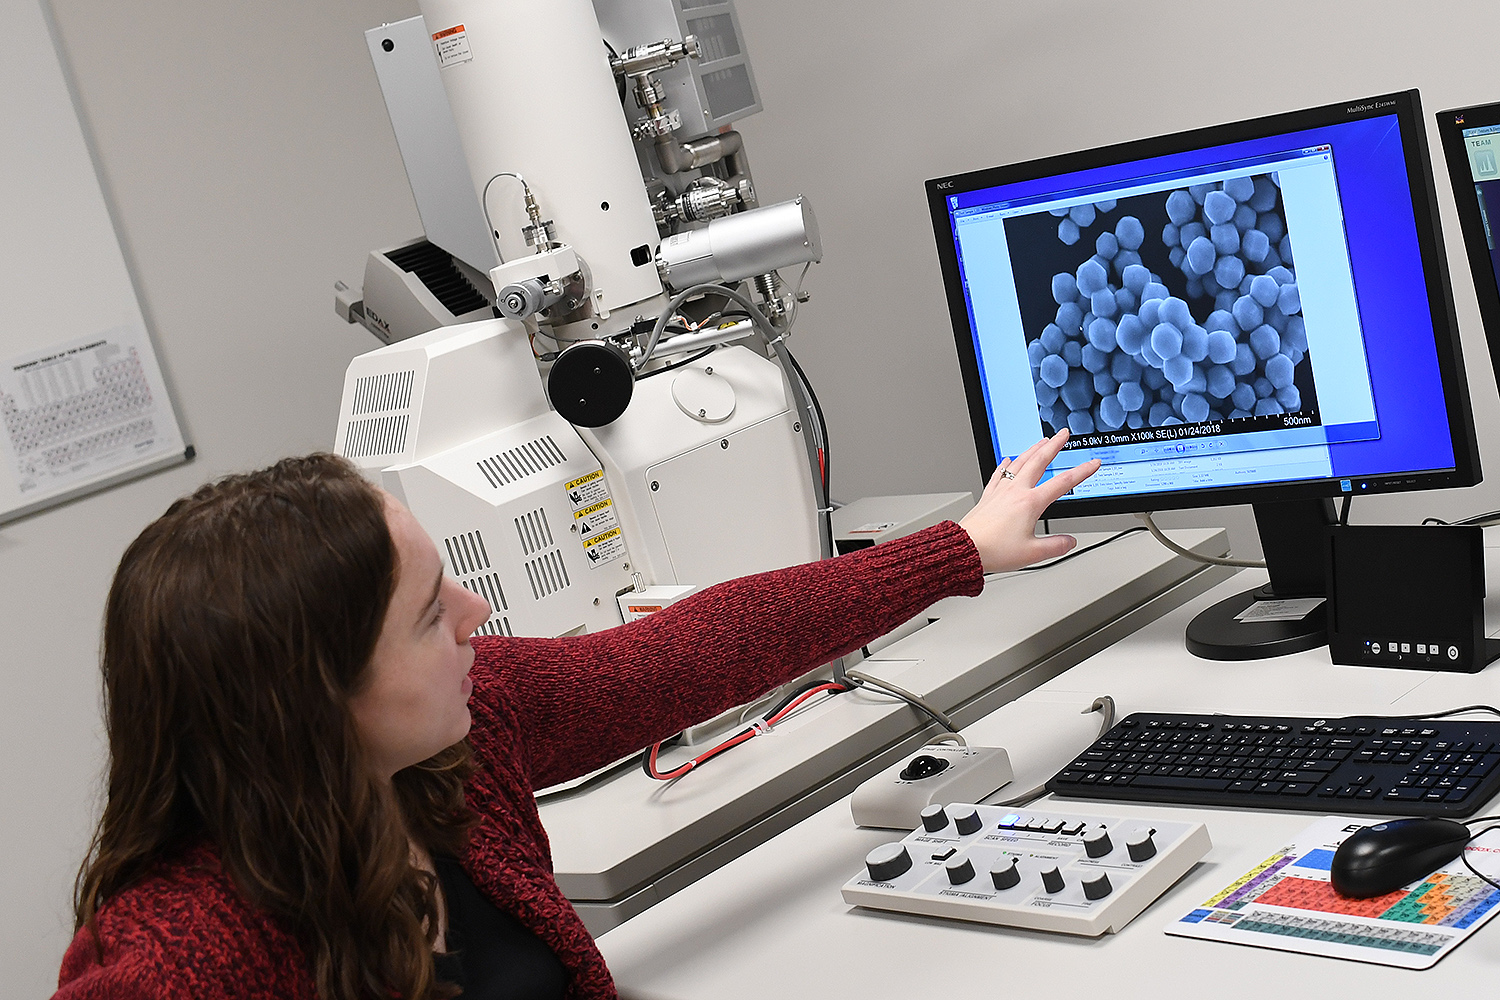 Michelle Personick, assistant professor of chemistry, examines nanoparticles viewed from a new field emission scanning electron microscope.